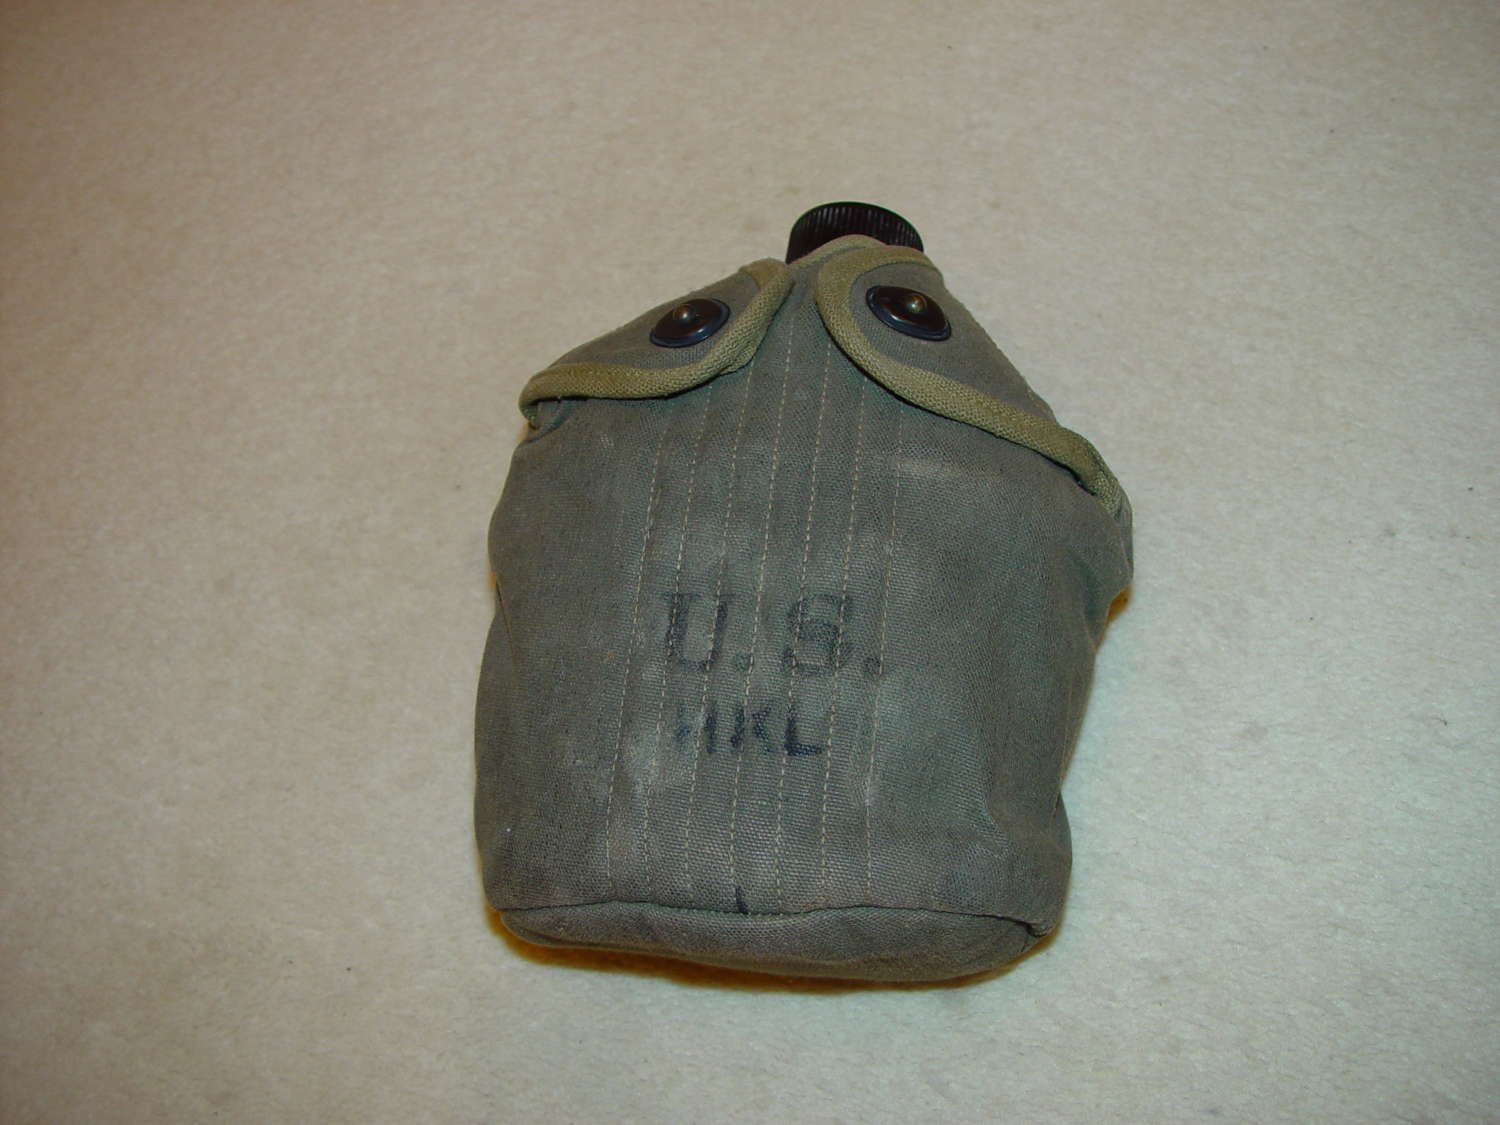 US army water bottle in OD#7 carrier